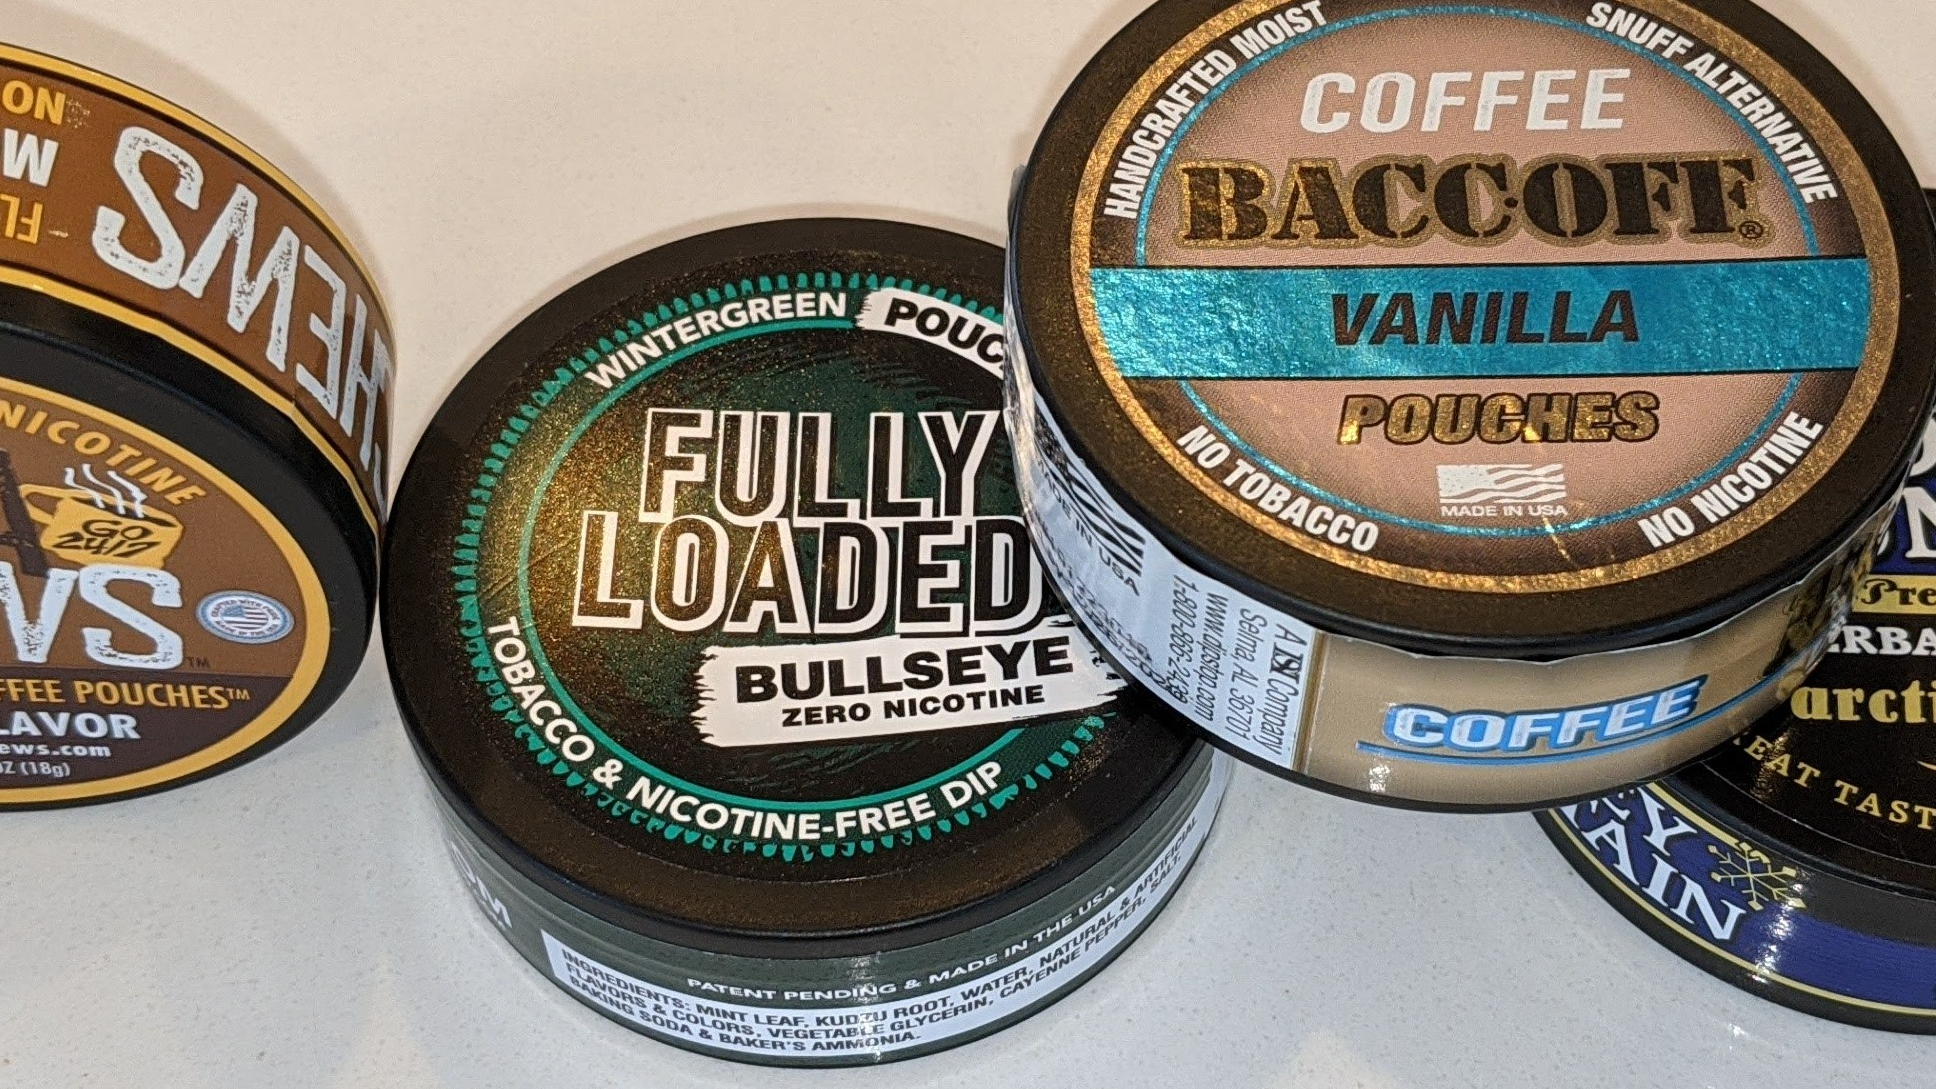 Plastic cans and tins for non-tobacco coffee pouches.